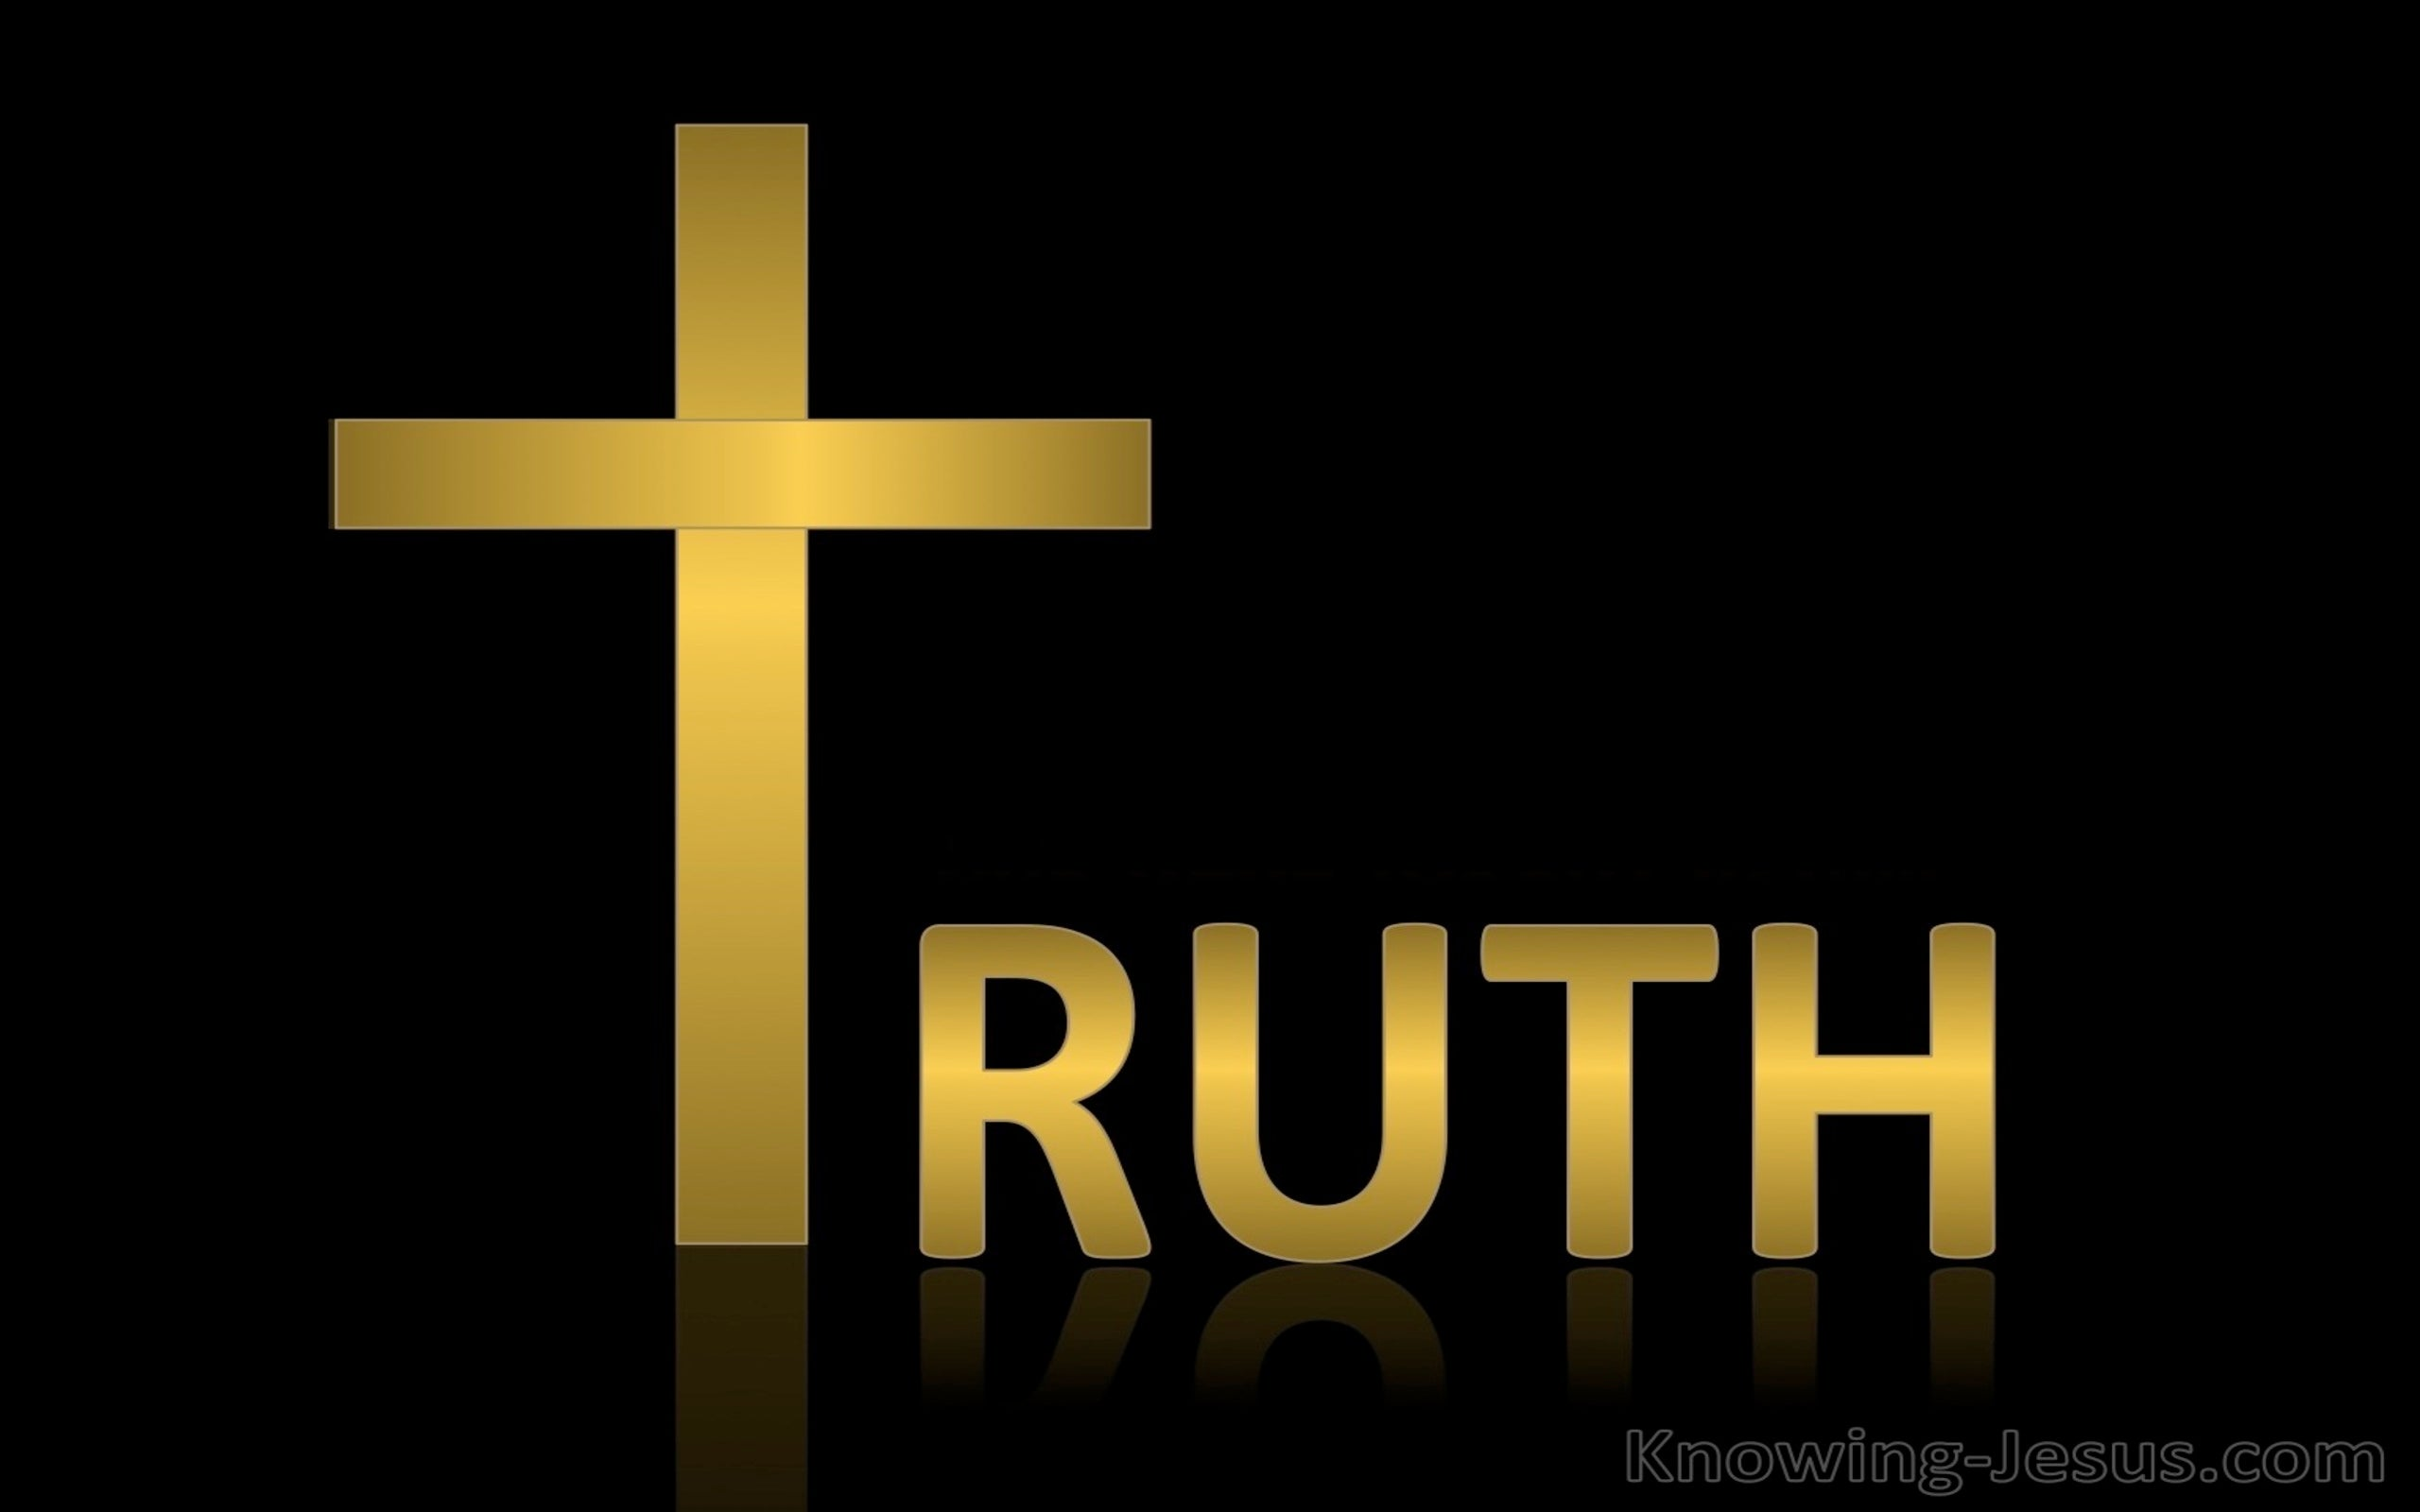 Ephesians 4:21 You Have Heard About The Truth (black)